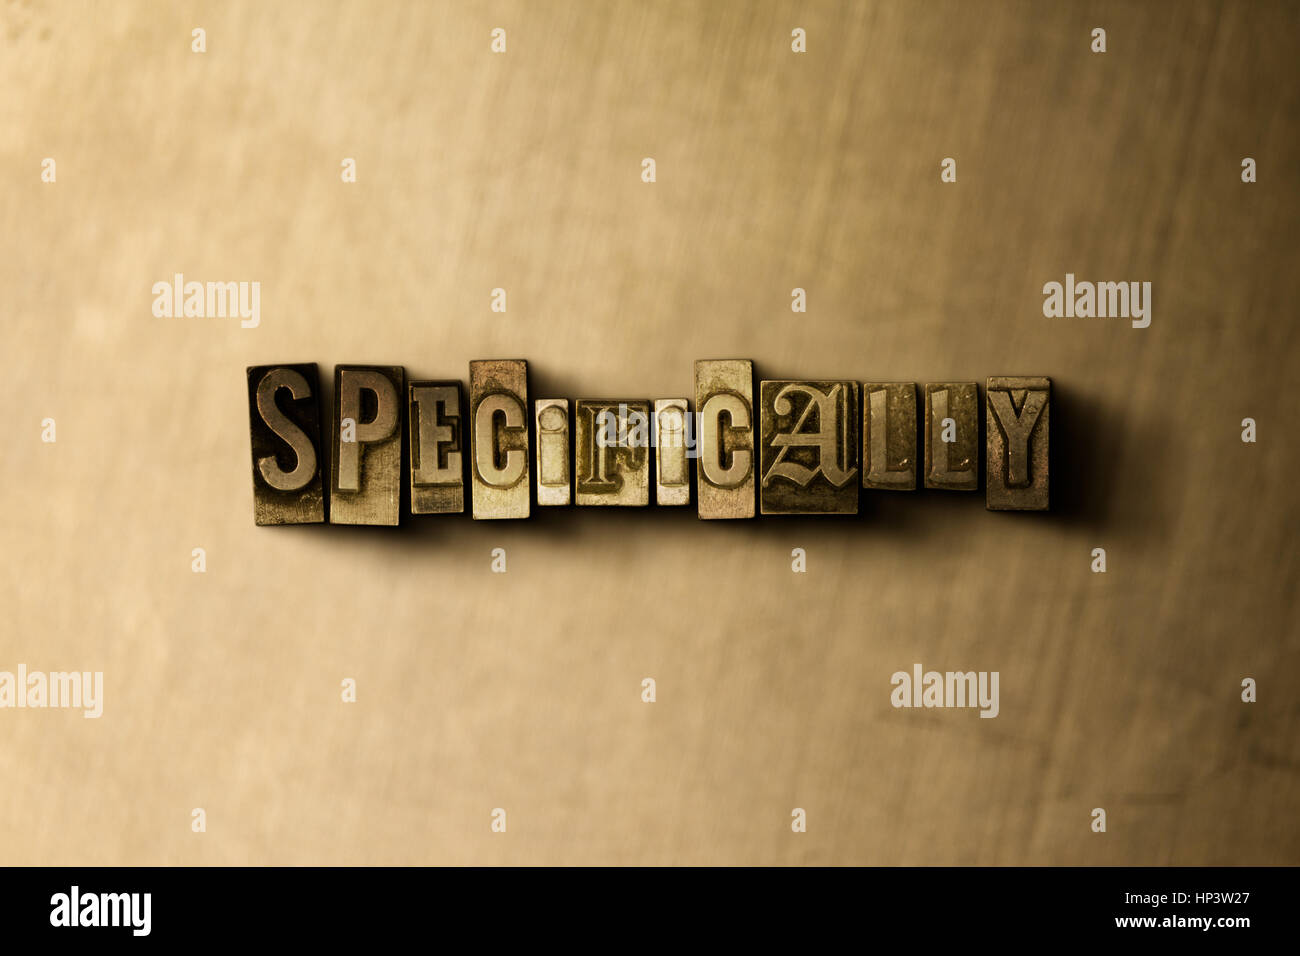 SPECIFICALLY - close-up of grungy vintage typeset word on metal backdrop. Royalty free stock illustration.  Can - Stock Image